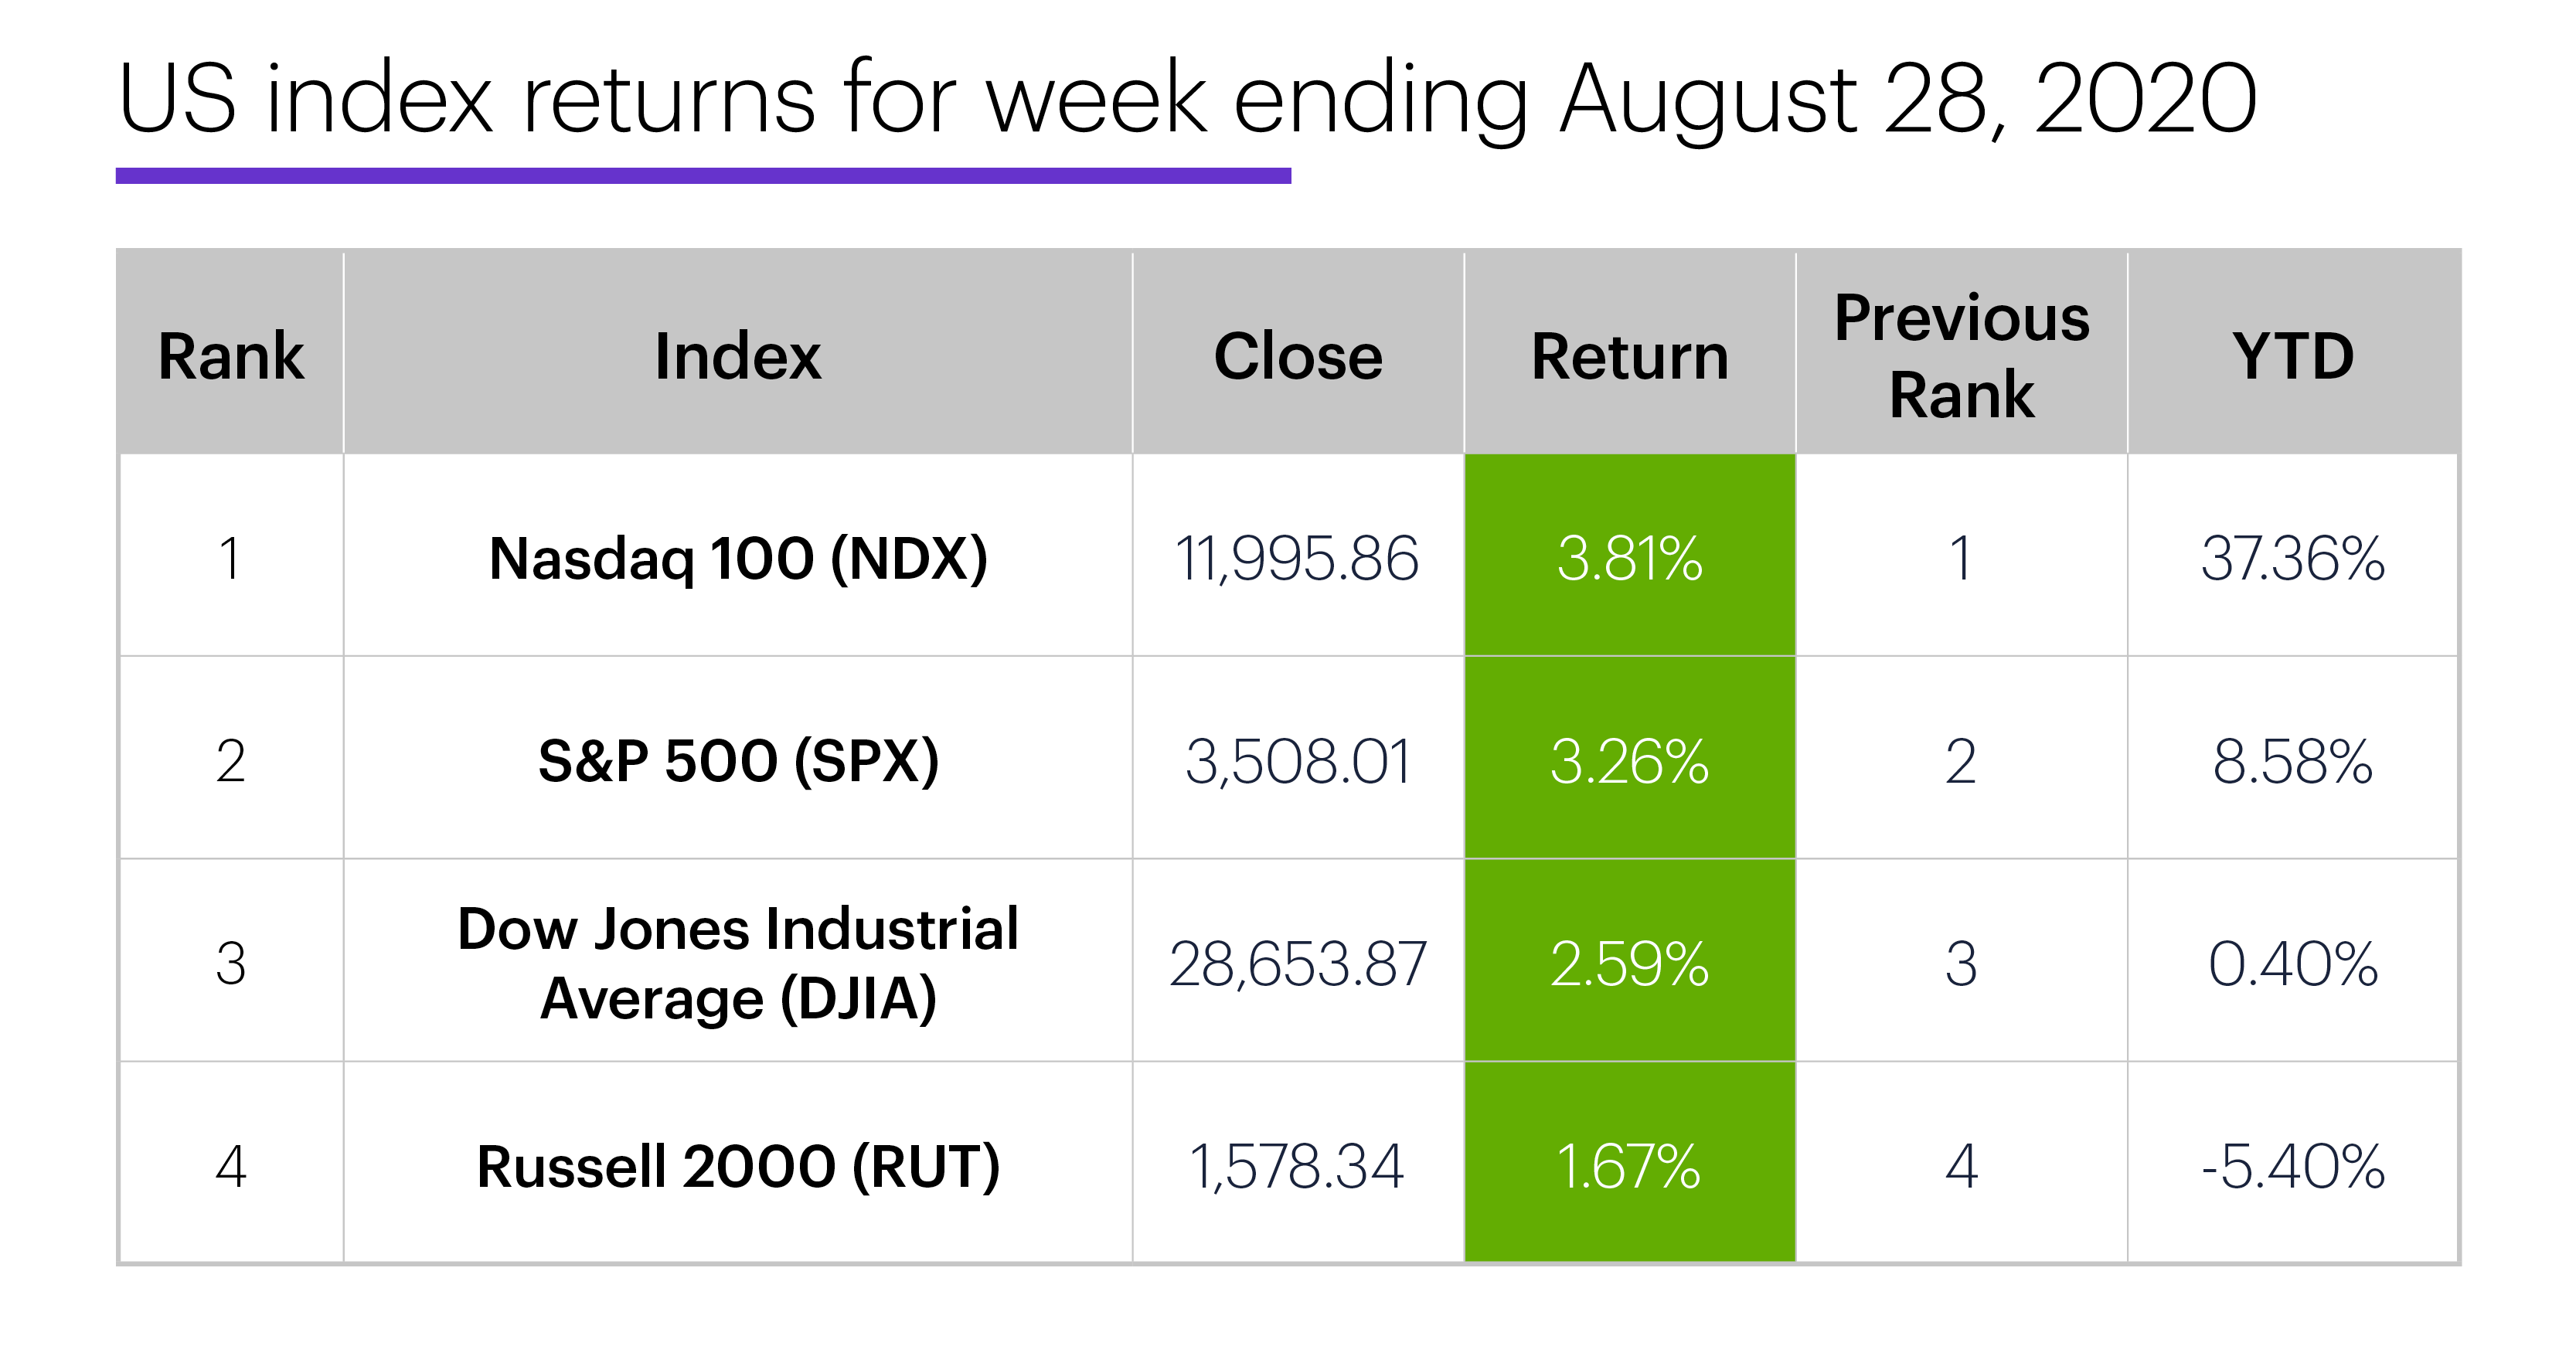 US stock index performance table for week ending 8/28/20. S&P 500 (SPX), Nasdaq 100 (NDX), Russell 2000 (RUT), Dow Jones Industrial Average (DJIA).